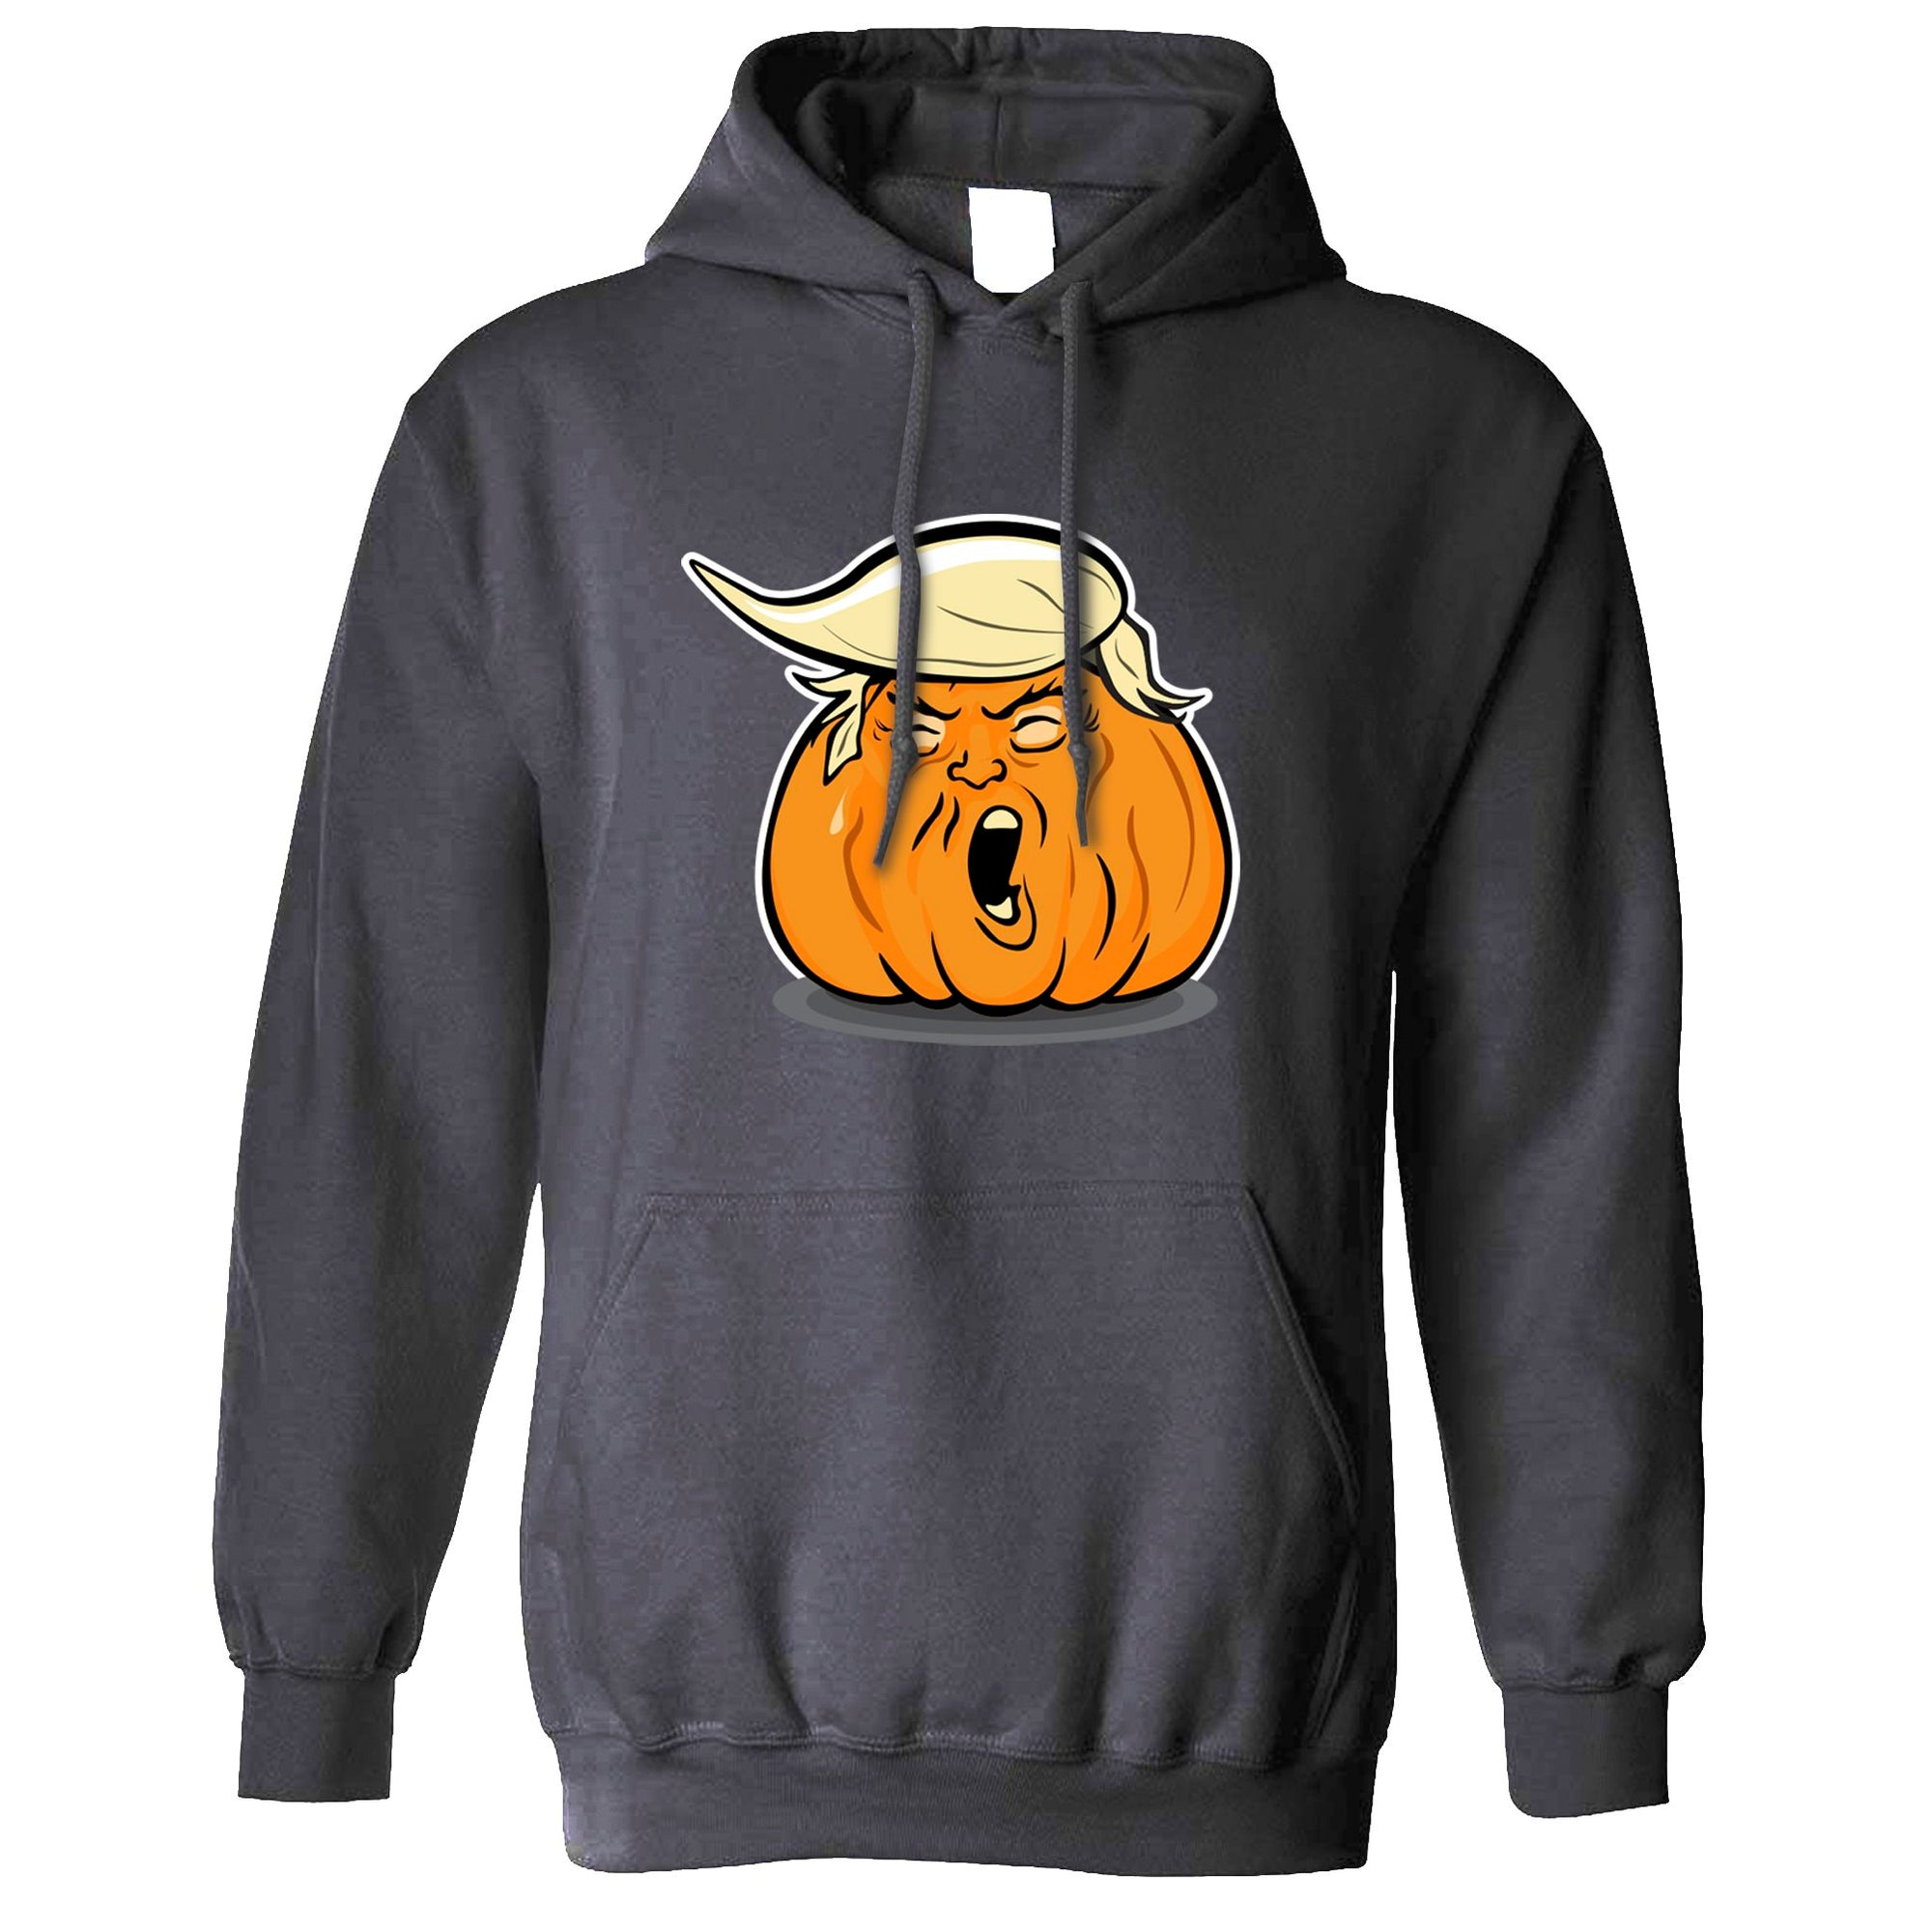 Donald Trump Hoodie Haloween Trumpkin Joke Hooded Jumper